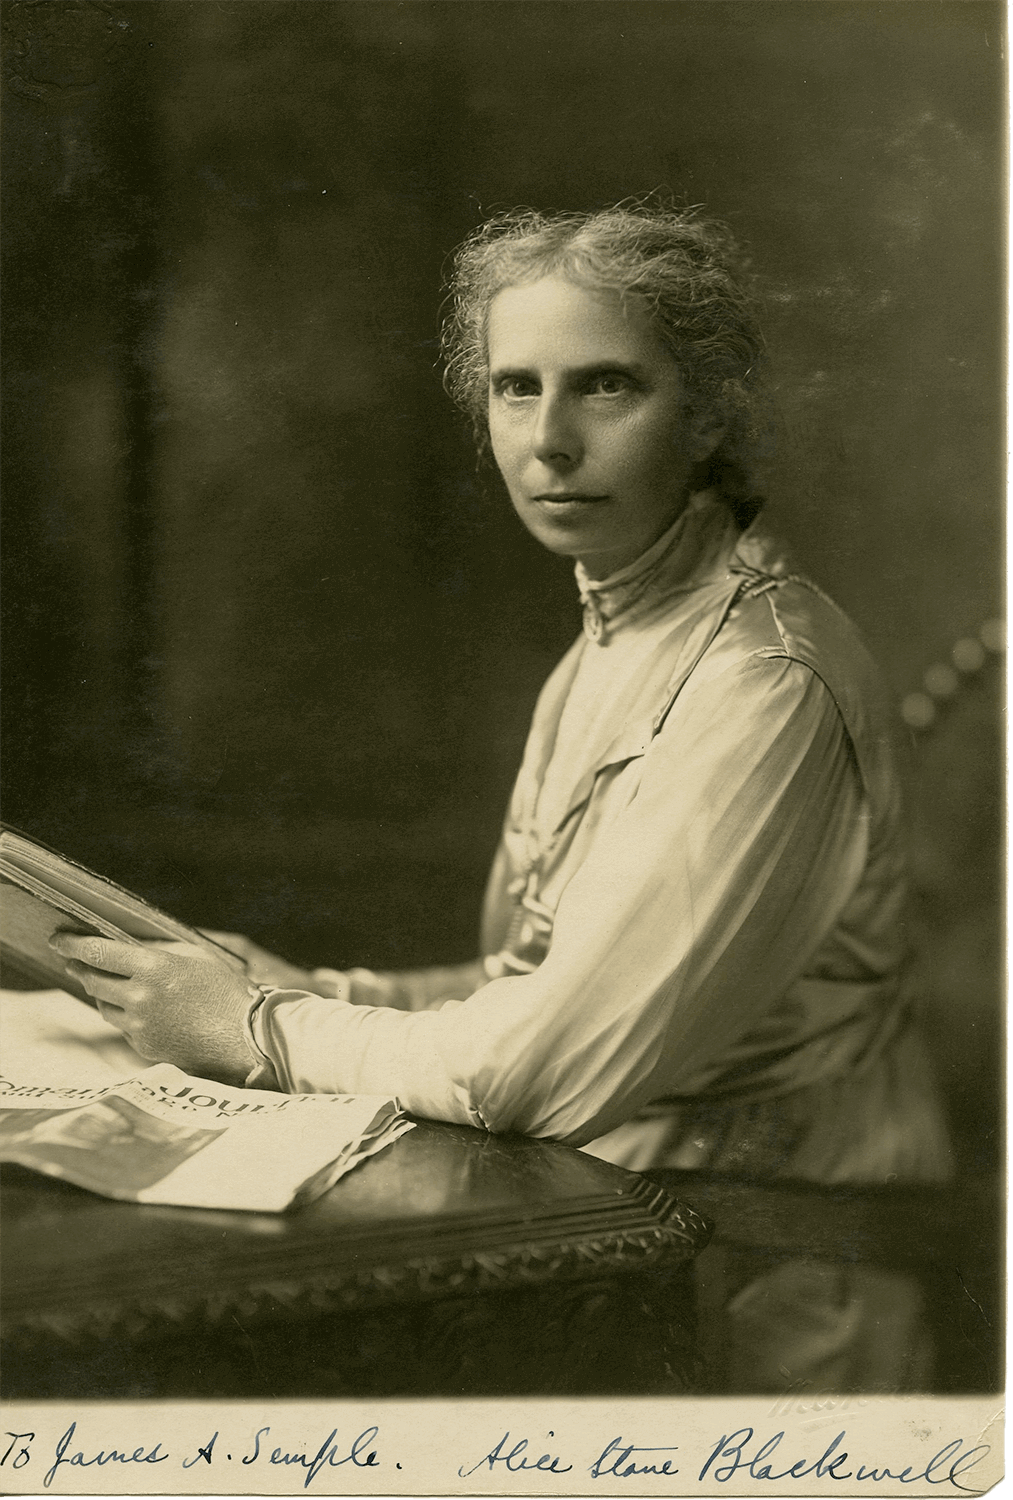 Alice Stone Blackwell (1857-1950), Suffragist, Activist, and Journalist (Photo: Marceau Studios, Manhattan)